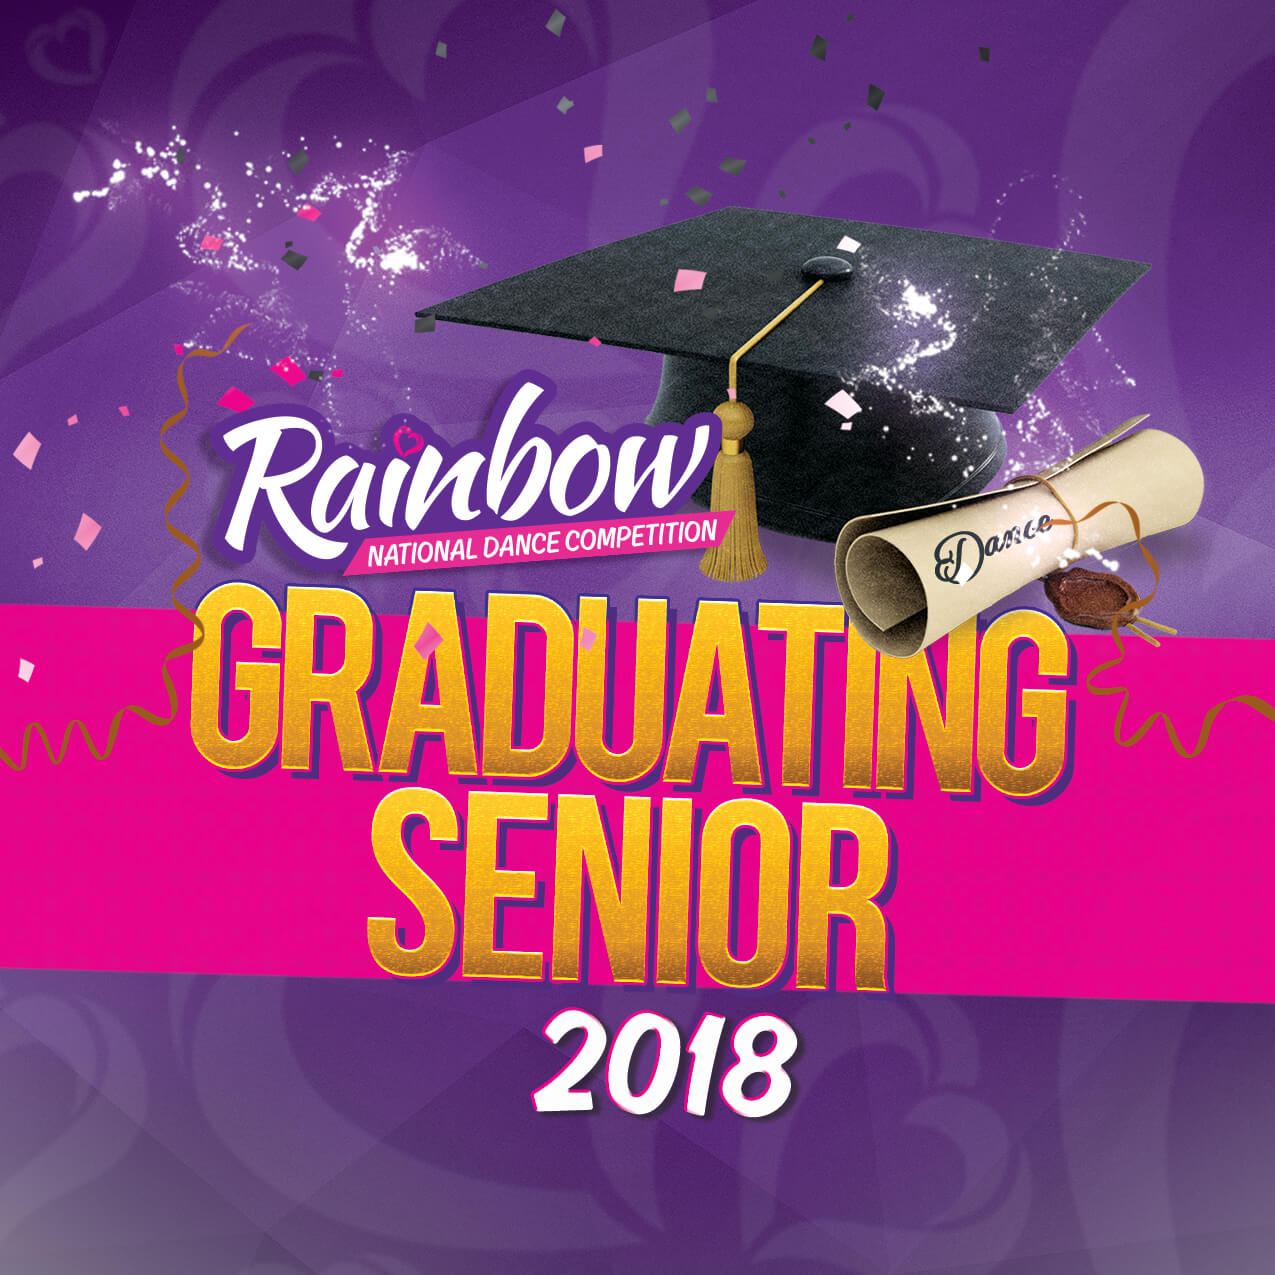 Rainbow Graduating Senior Scholarship